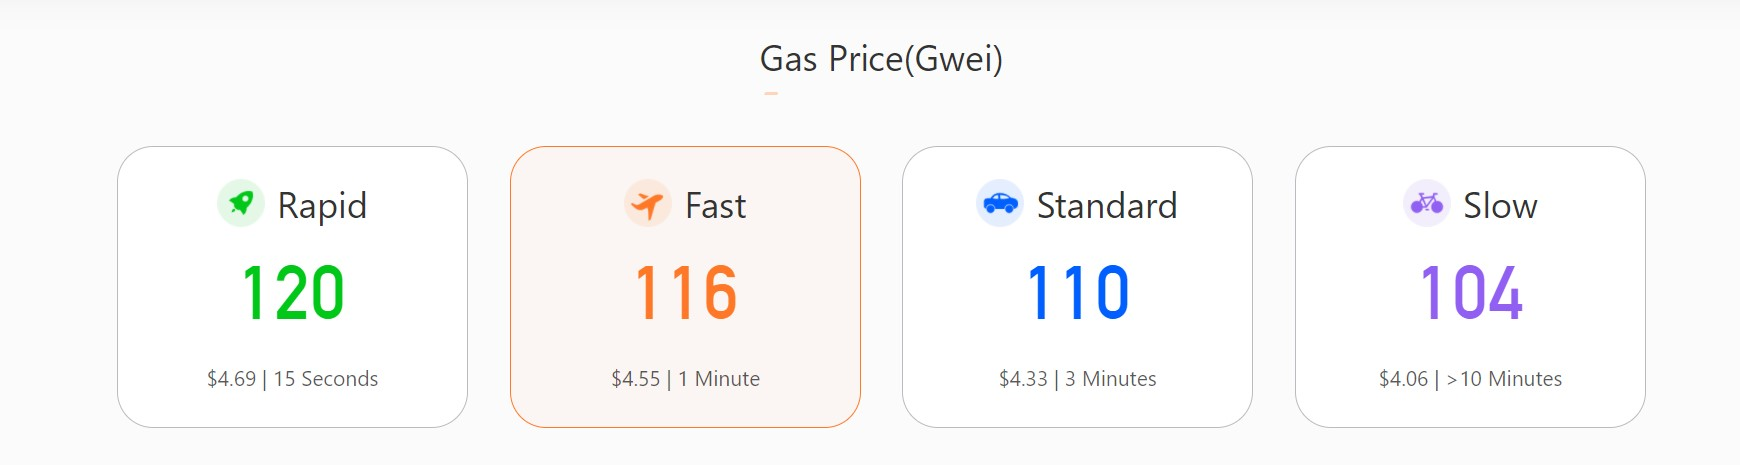 ether gas price in real time